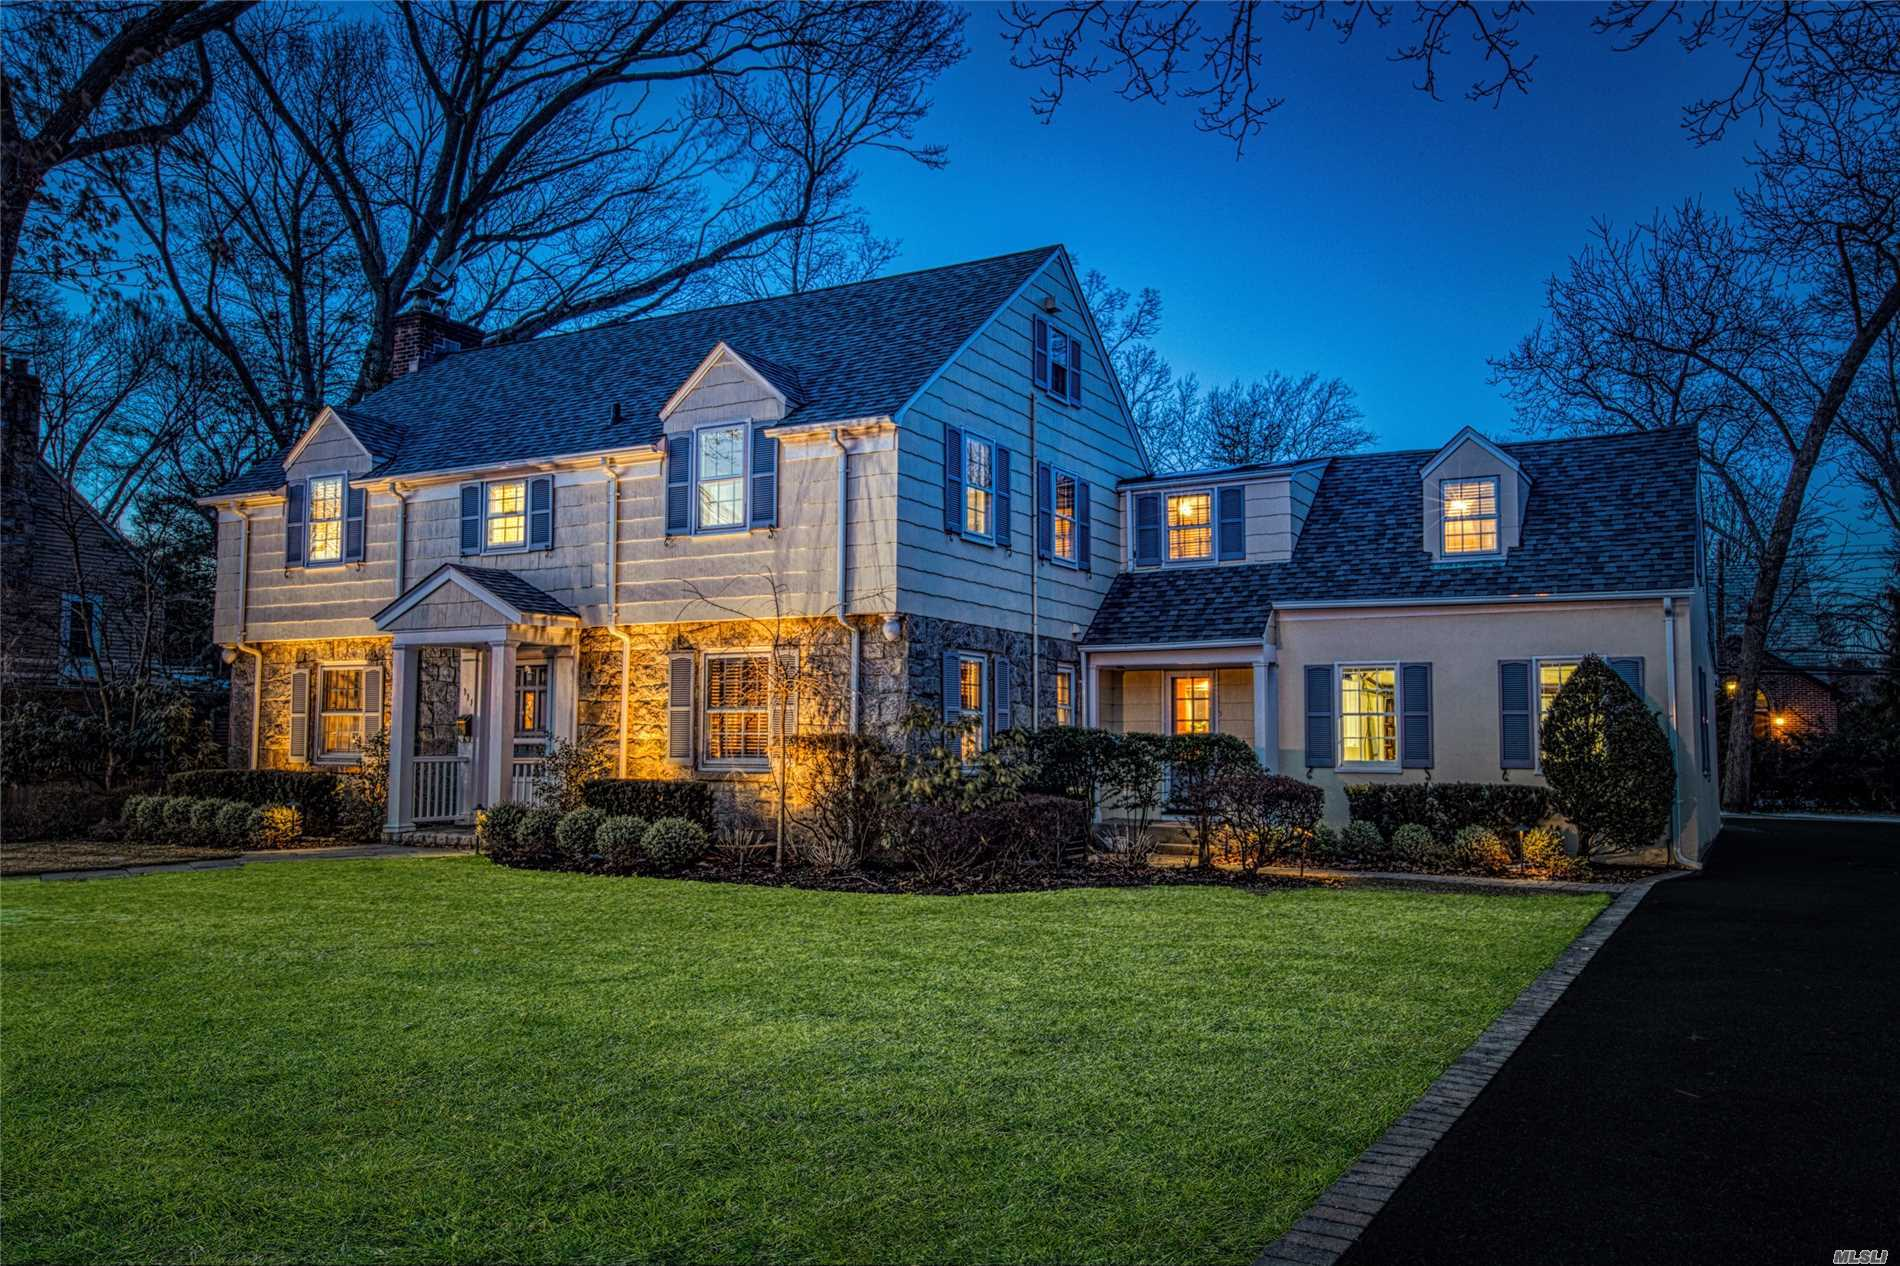 Welcome To This Mid-Block Old Canterbury Colonial Situated On A Park-Like Property. Boasting 5 Bedrooms & 3 Full Bathrooms, 2 Car Garage, A Full-Finished Basement And 2 Fireplaces. Featuring A Beautiful Living Room Extension, Hardwood Floors Throughout & An Elegant Formal Dining Room. Make This Beautiful Home Yours!